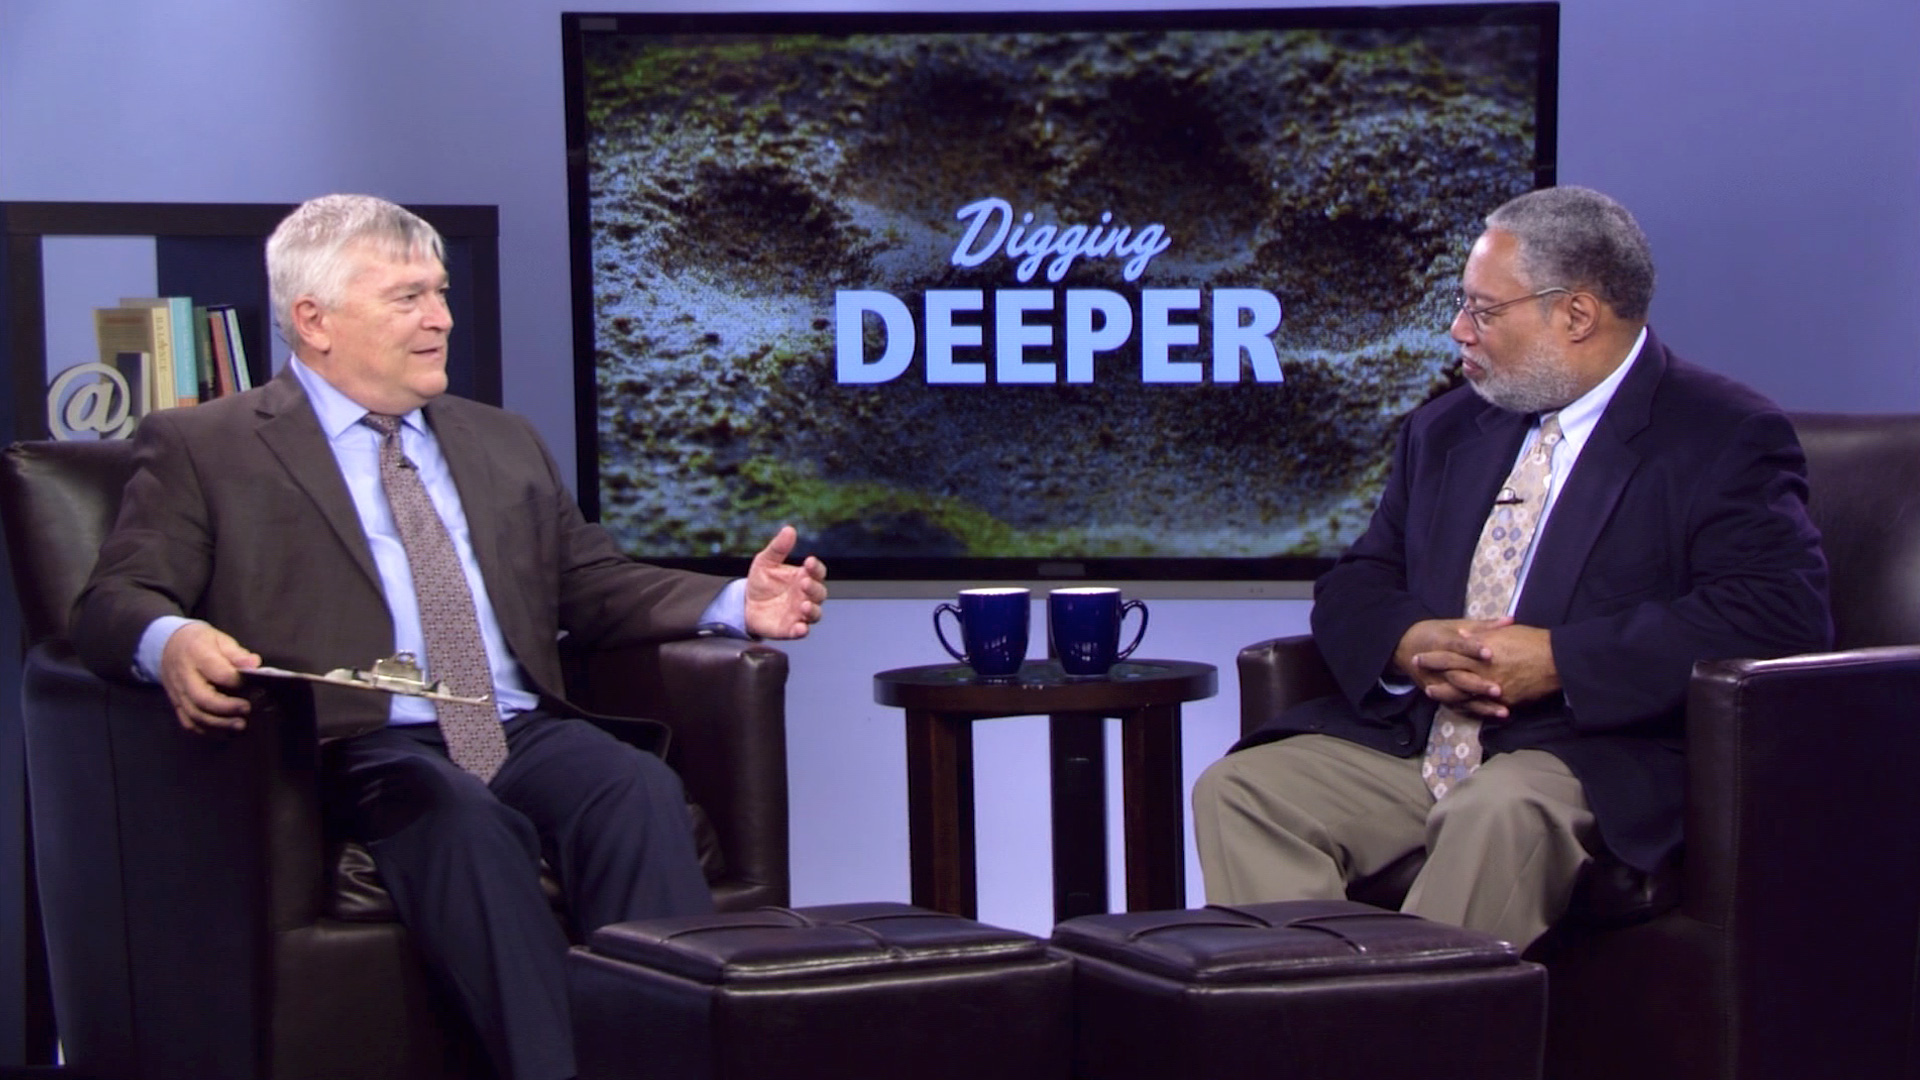 Eric Barron and Lonnie G. Bunch, III on the set of Digging Deeper